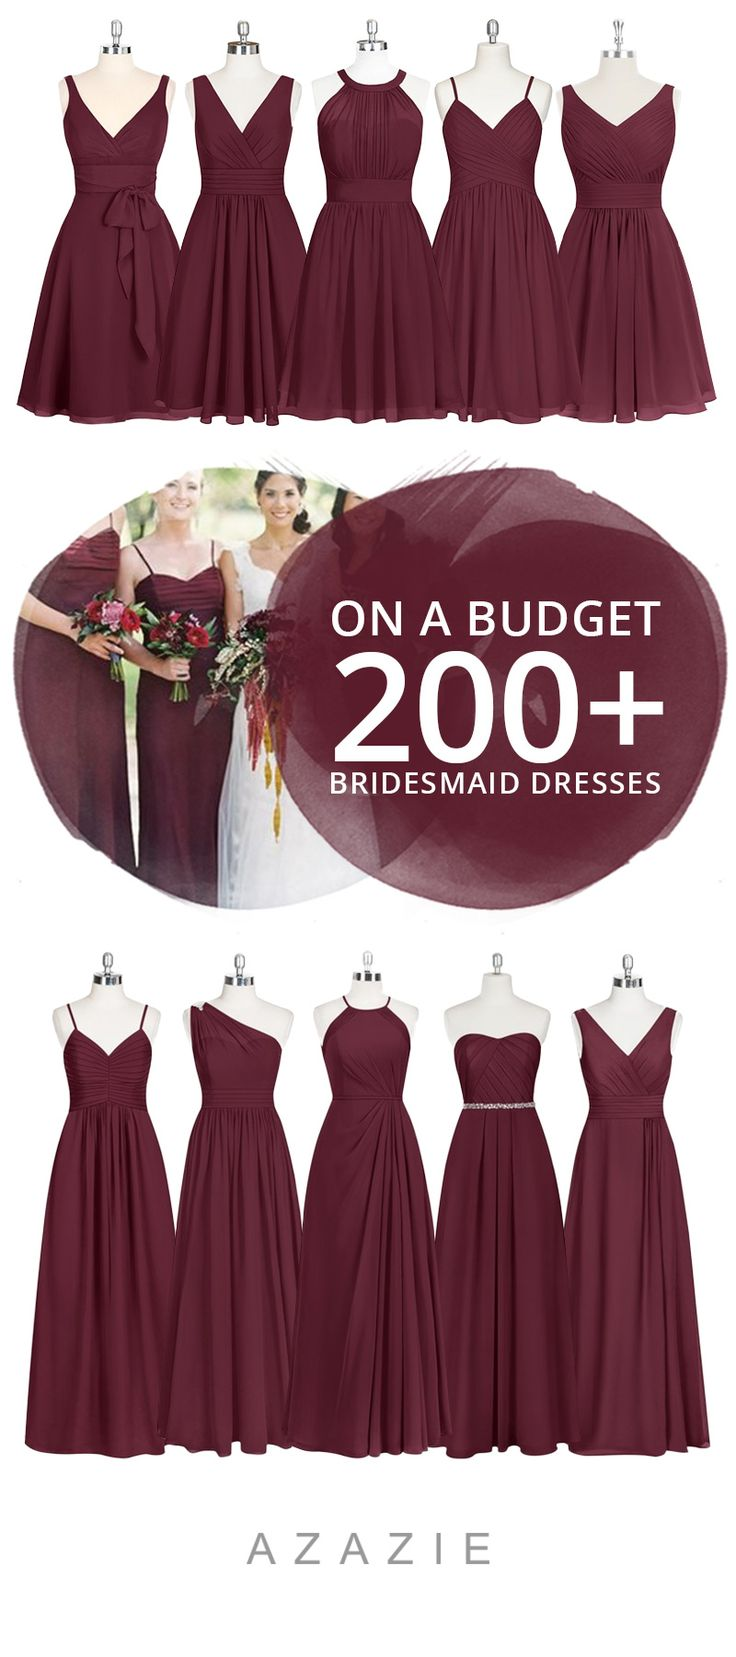 Dress your bridesmaid in our cabernet shade! Available in sizes 0-30 and free custom sizing! Every woman deserves their dream dress, that fits right while still being budget friendly!